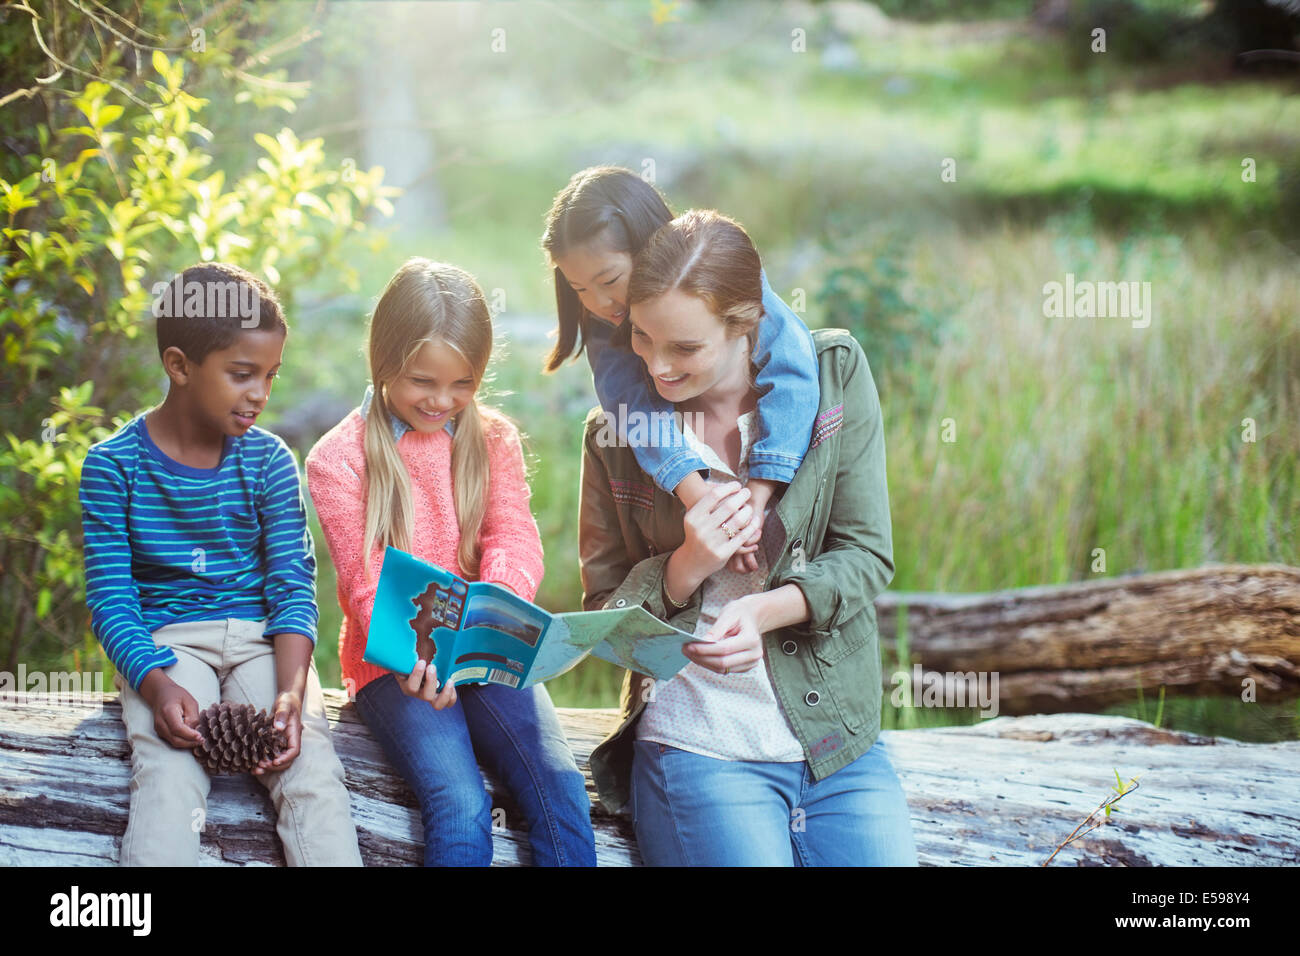 Students and teacher reading map in forest - Stock Image